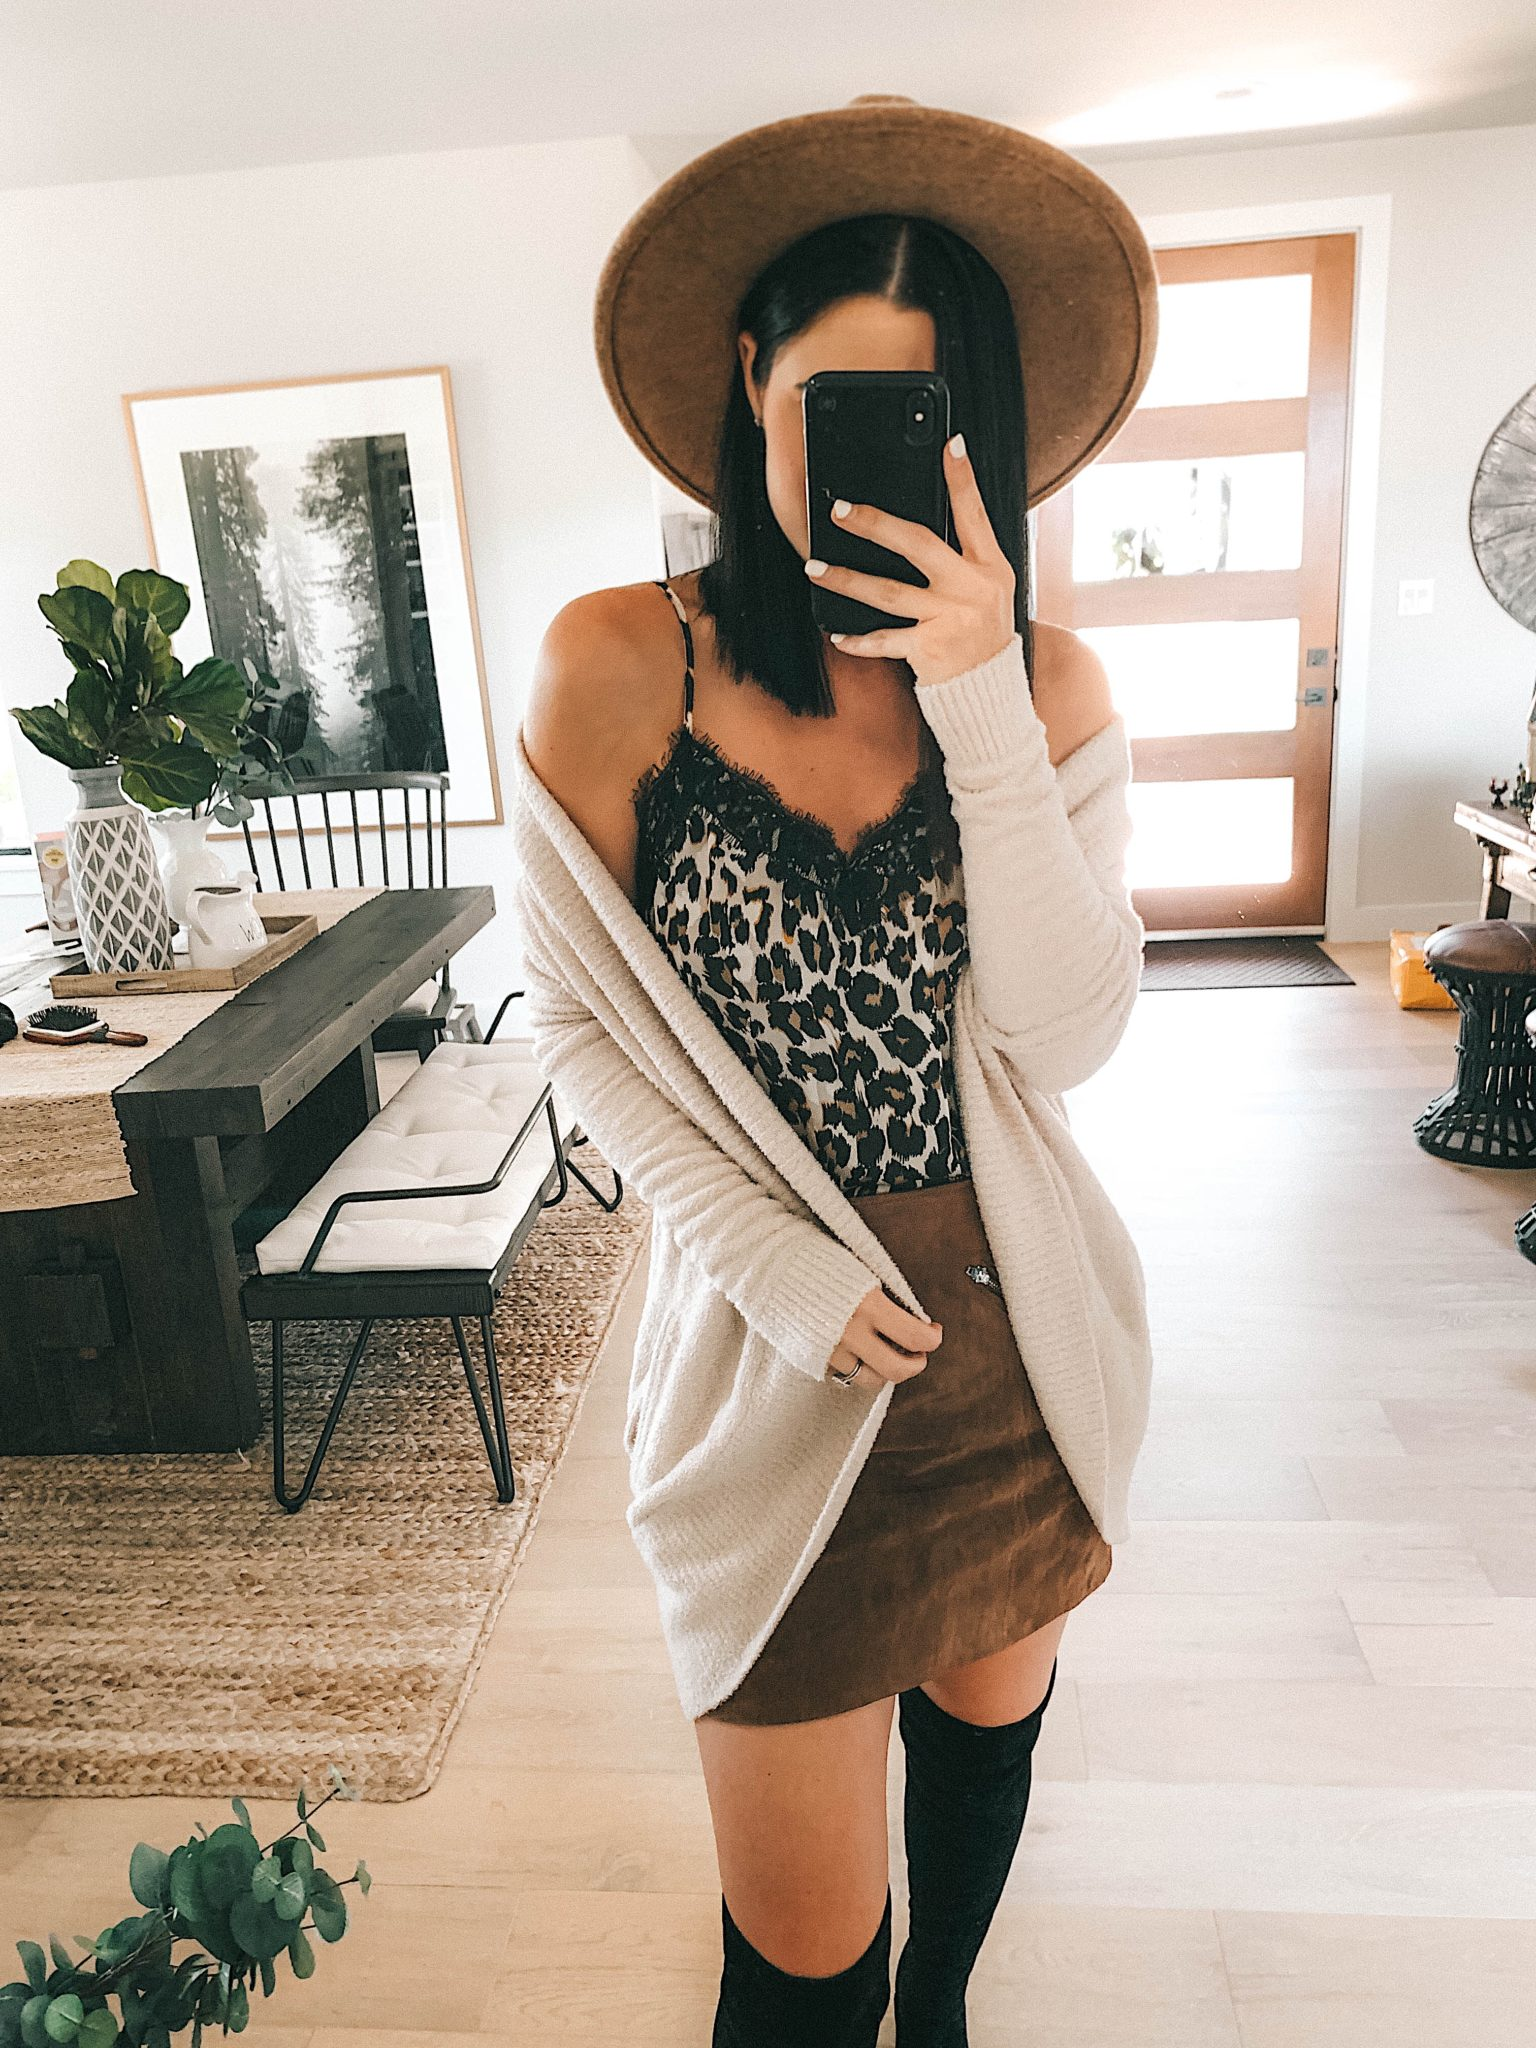 Create a Capsule Wardrobe with Nordstrom Anniversary Sale Pieces by popular Austin fashion blog, Dressed to Kill: image of a woman standing in her house and wearing a Nordstrom BlankNYC Suede Mini Skirt, Barefoot Dreams Cardigan, Steve Madden Over the Knee Boots and BP Lace Cami.